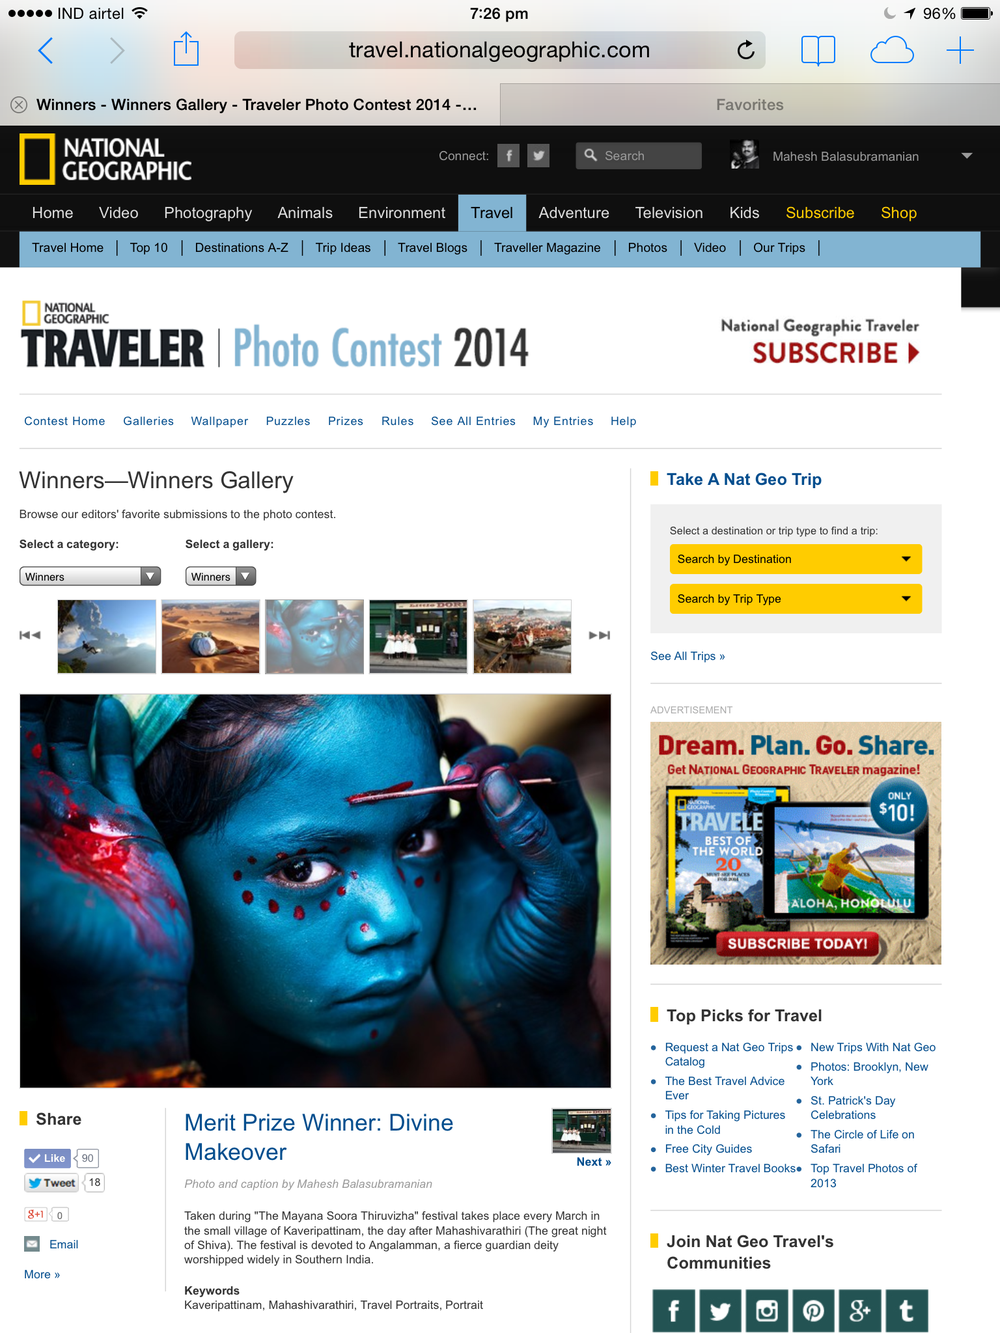 National Geographic Traveler Photo Contest 2014